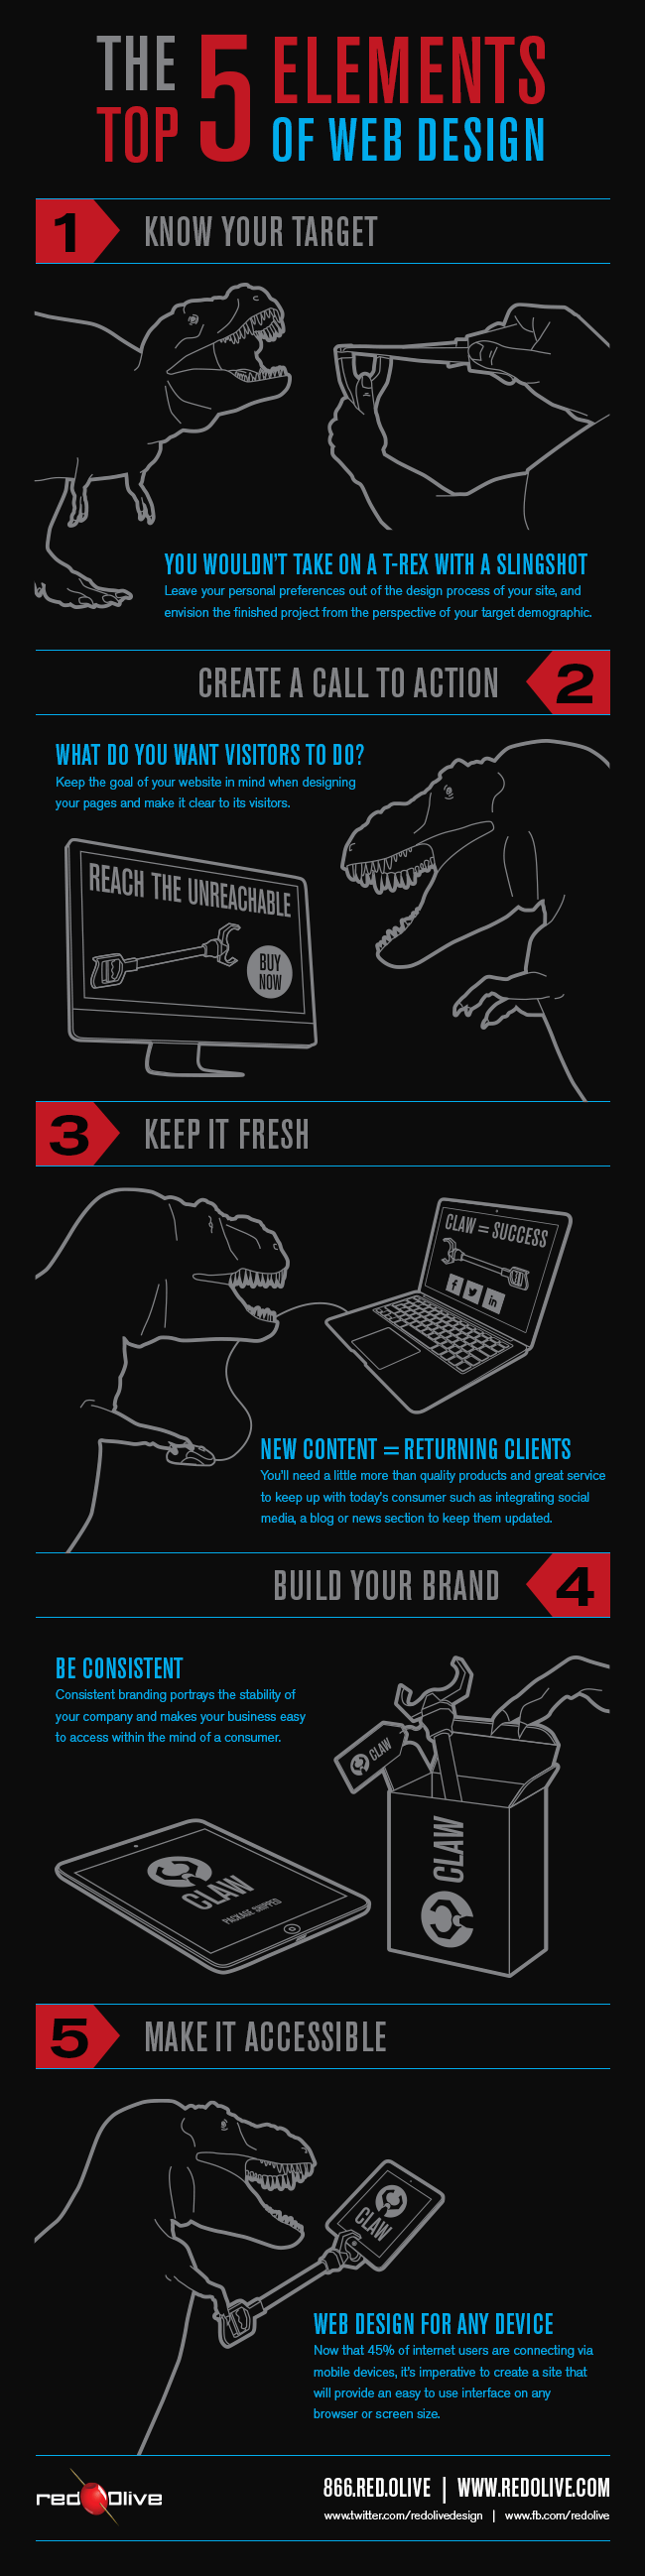 Top 5 Elements of Web Design Infographic